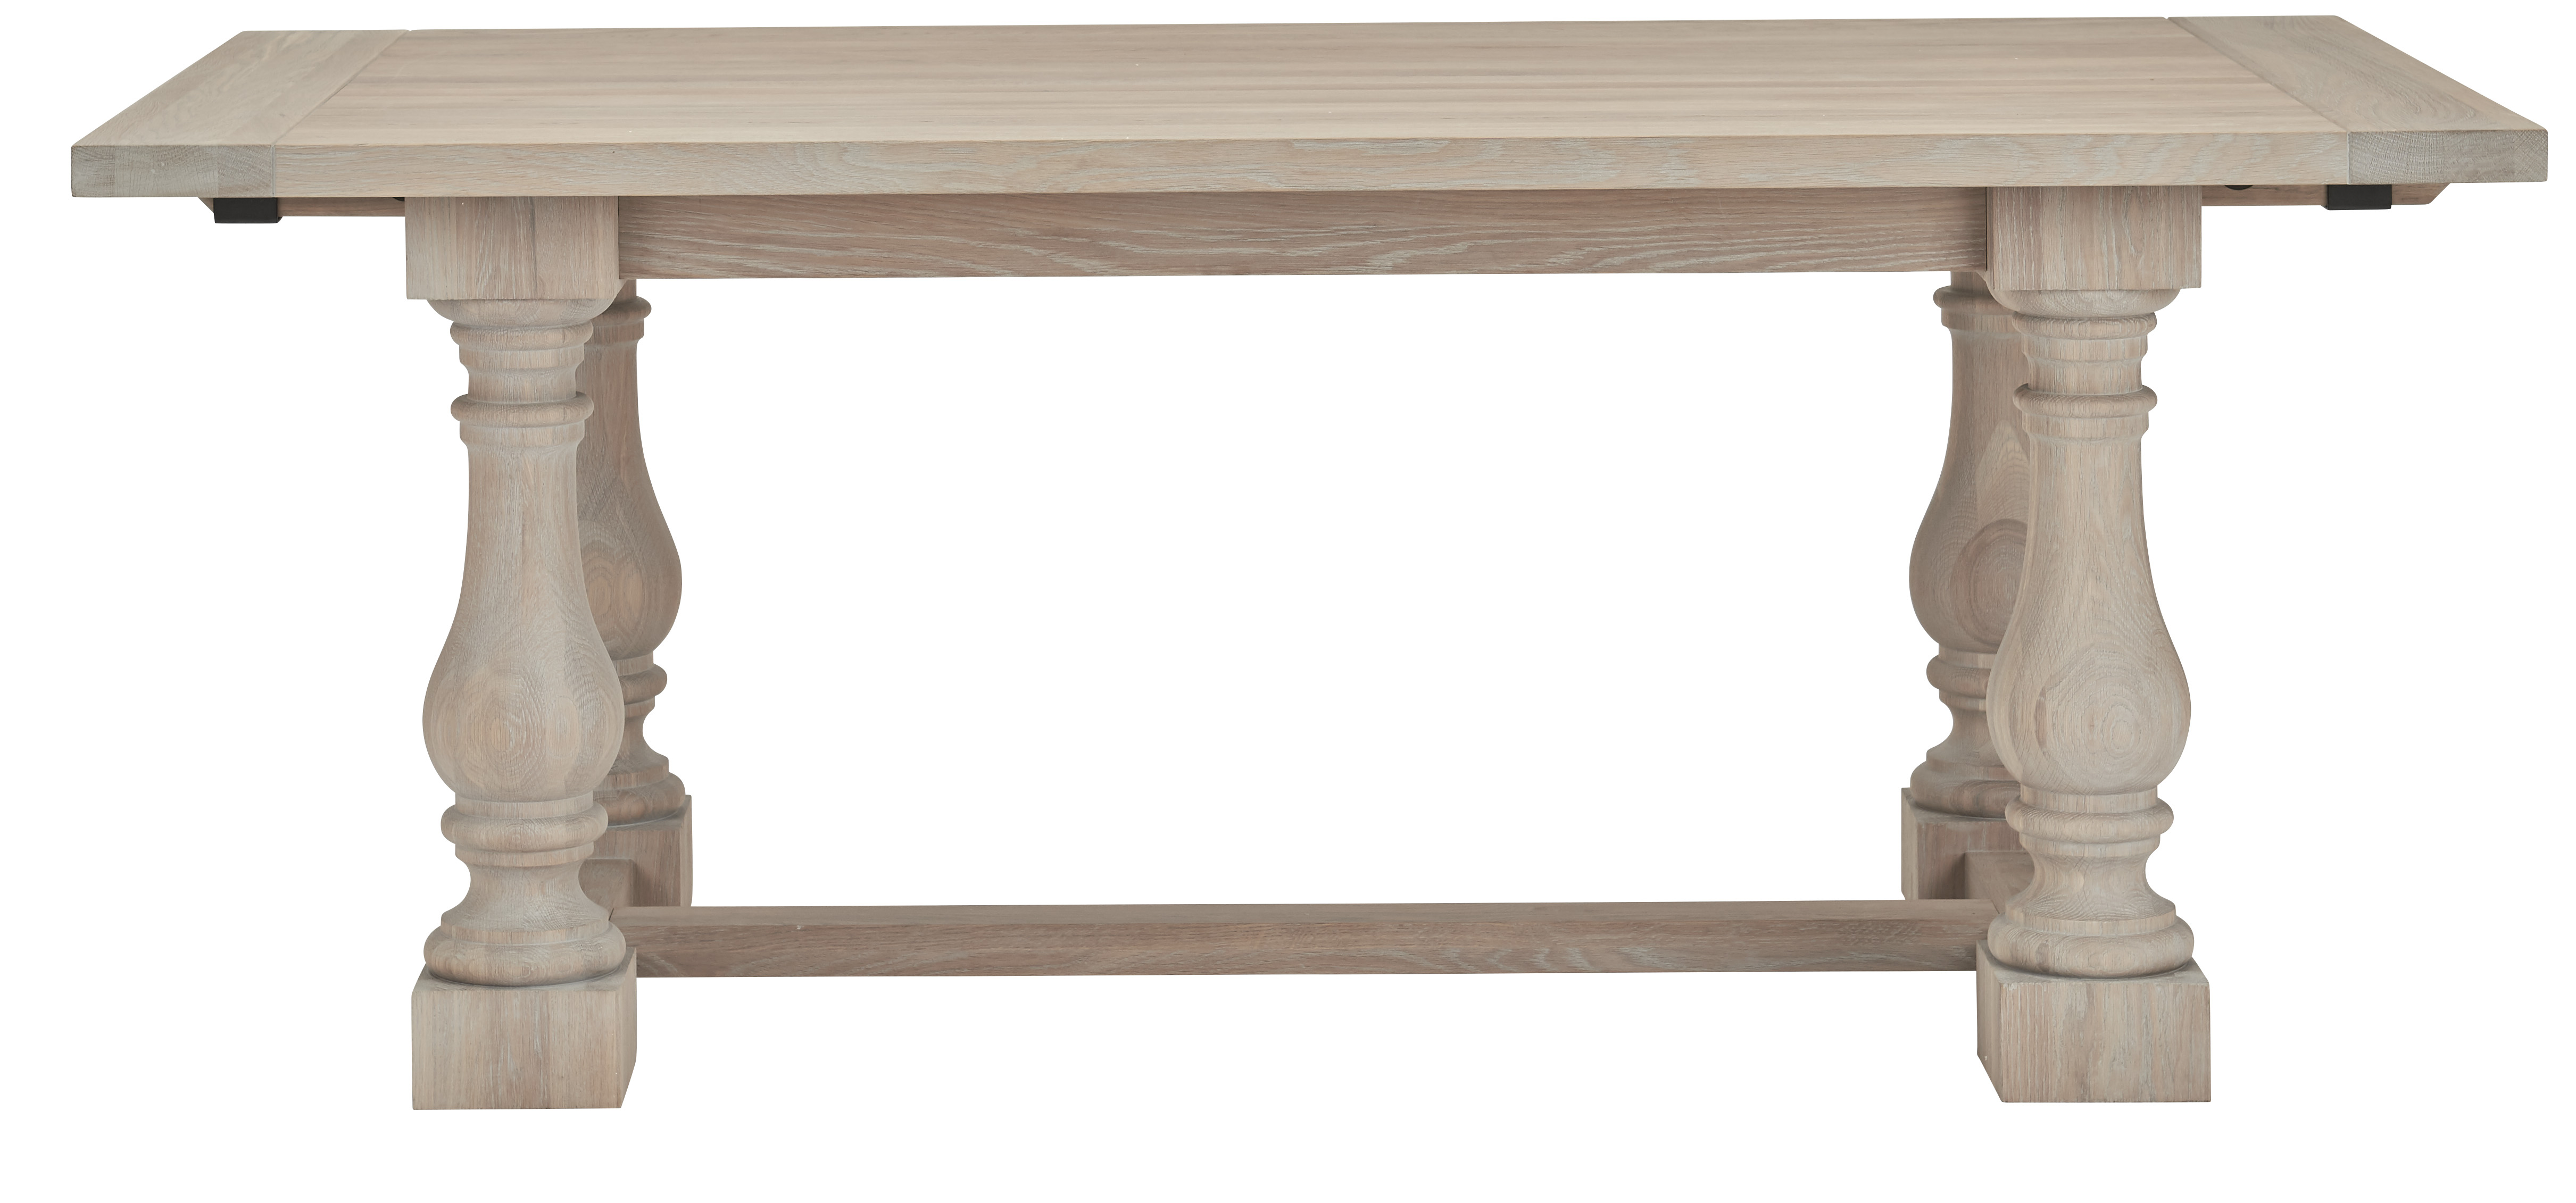 Balmoral Extending Dining Table